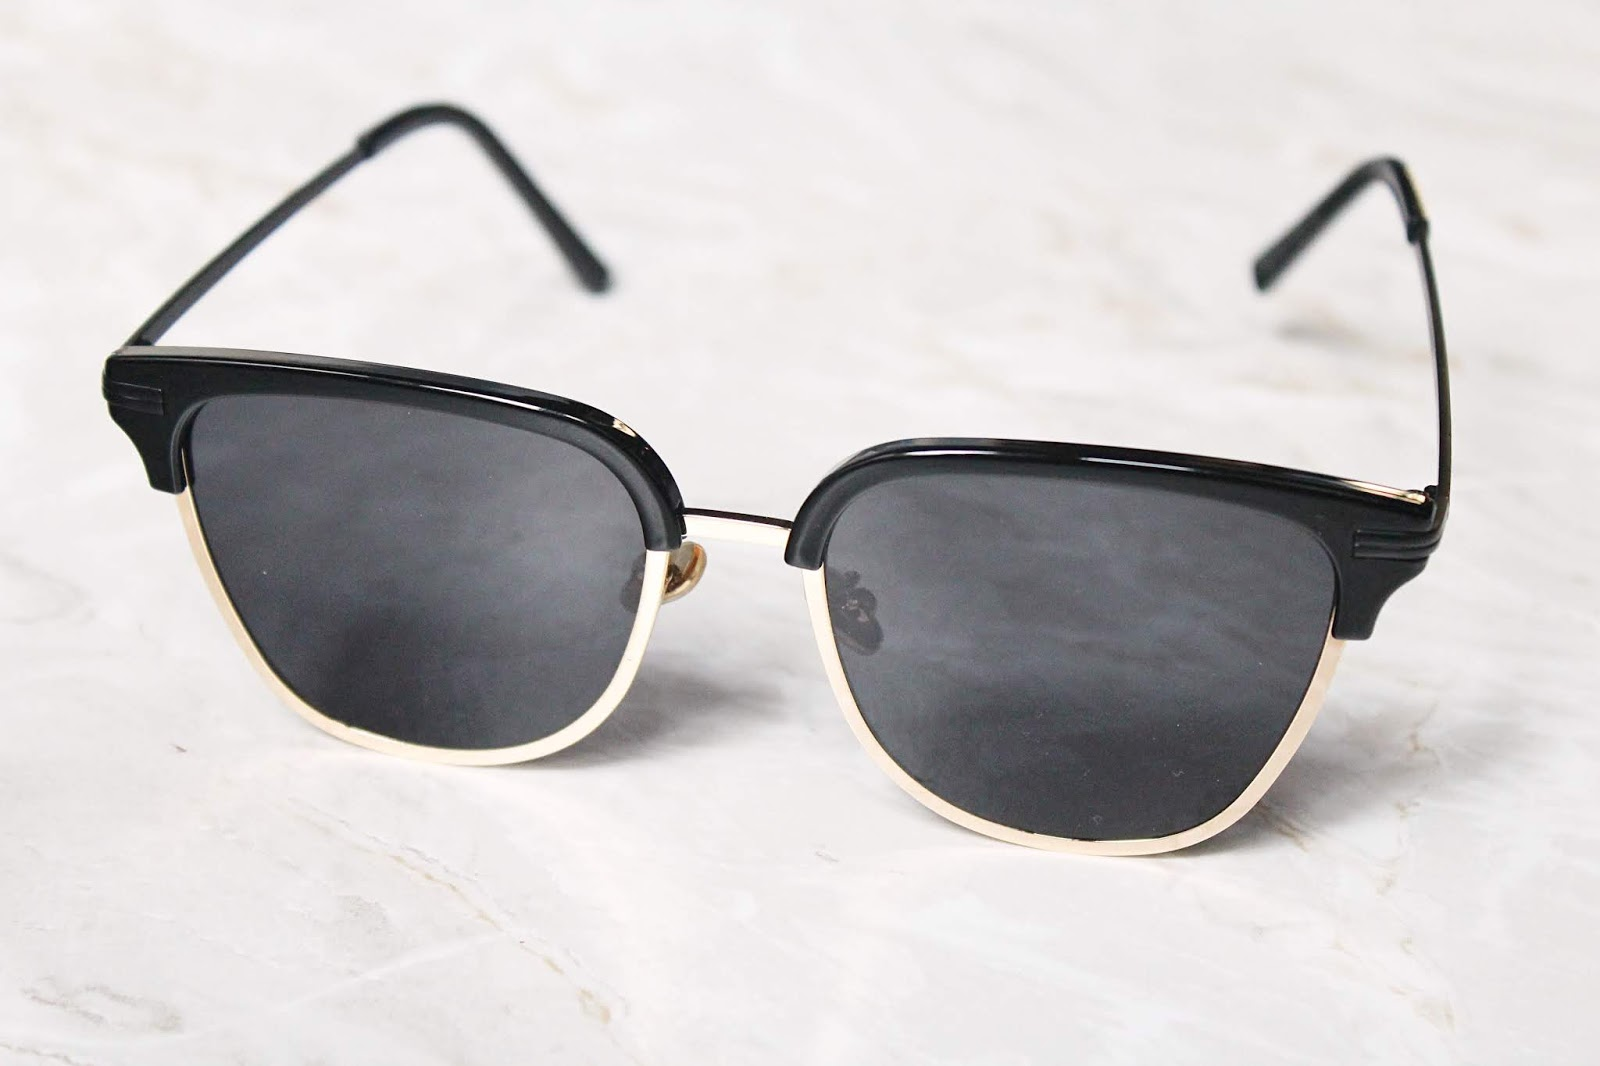 LMNT Kesha Sunglasses Review